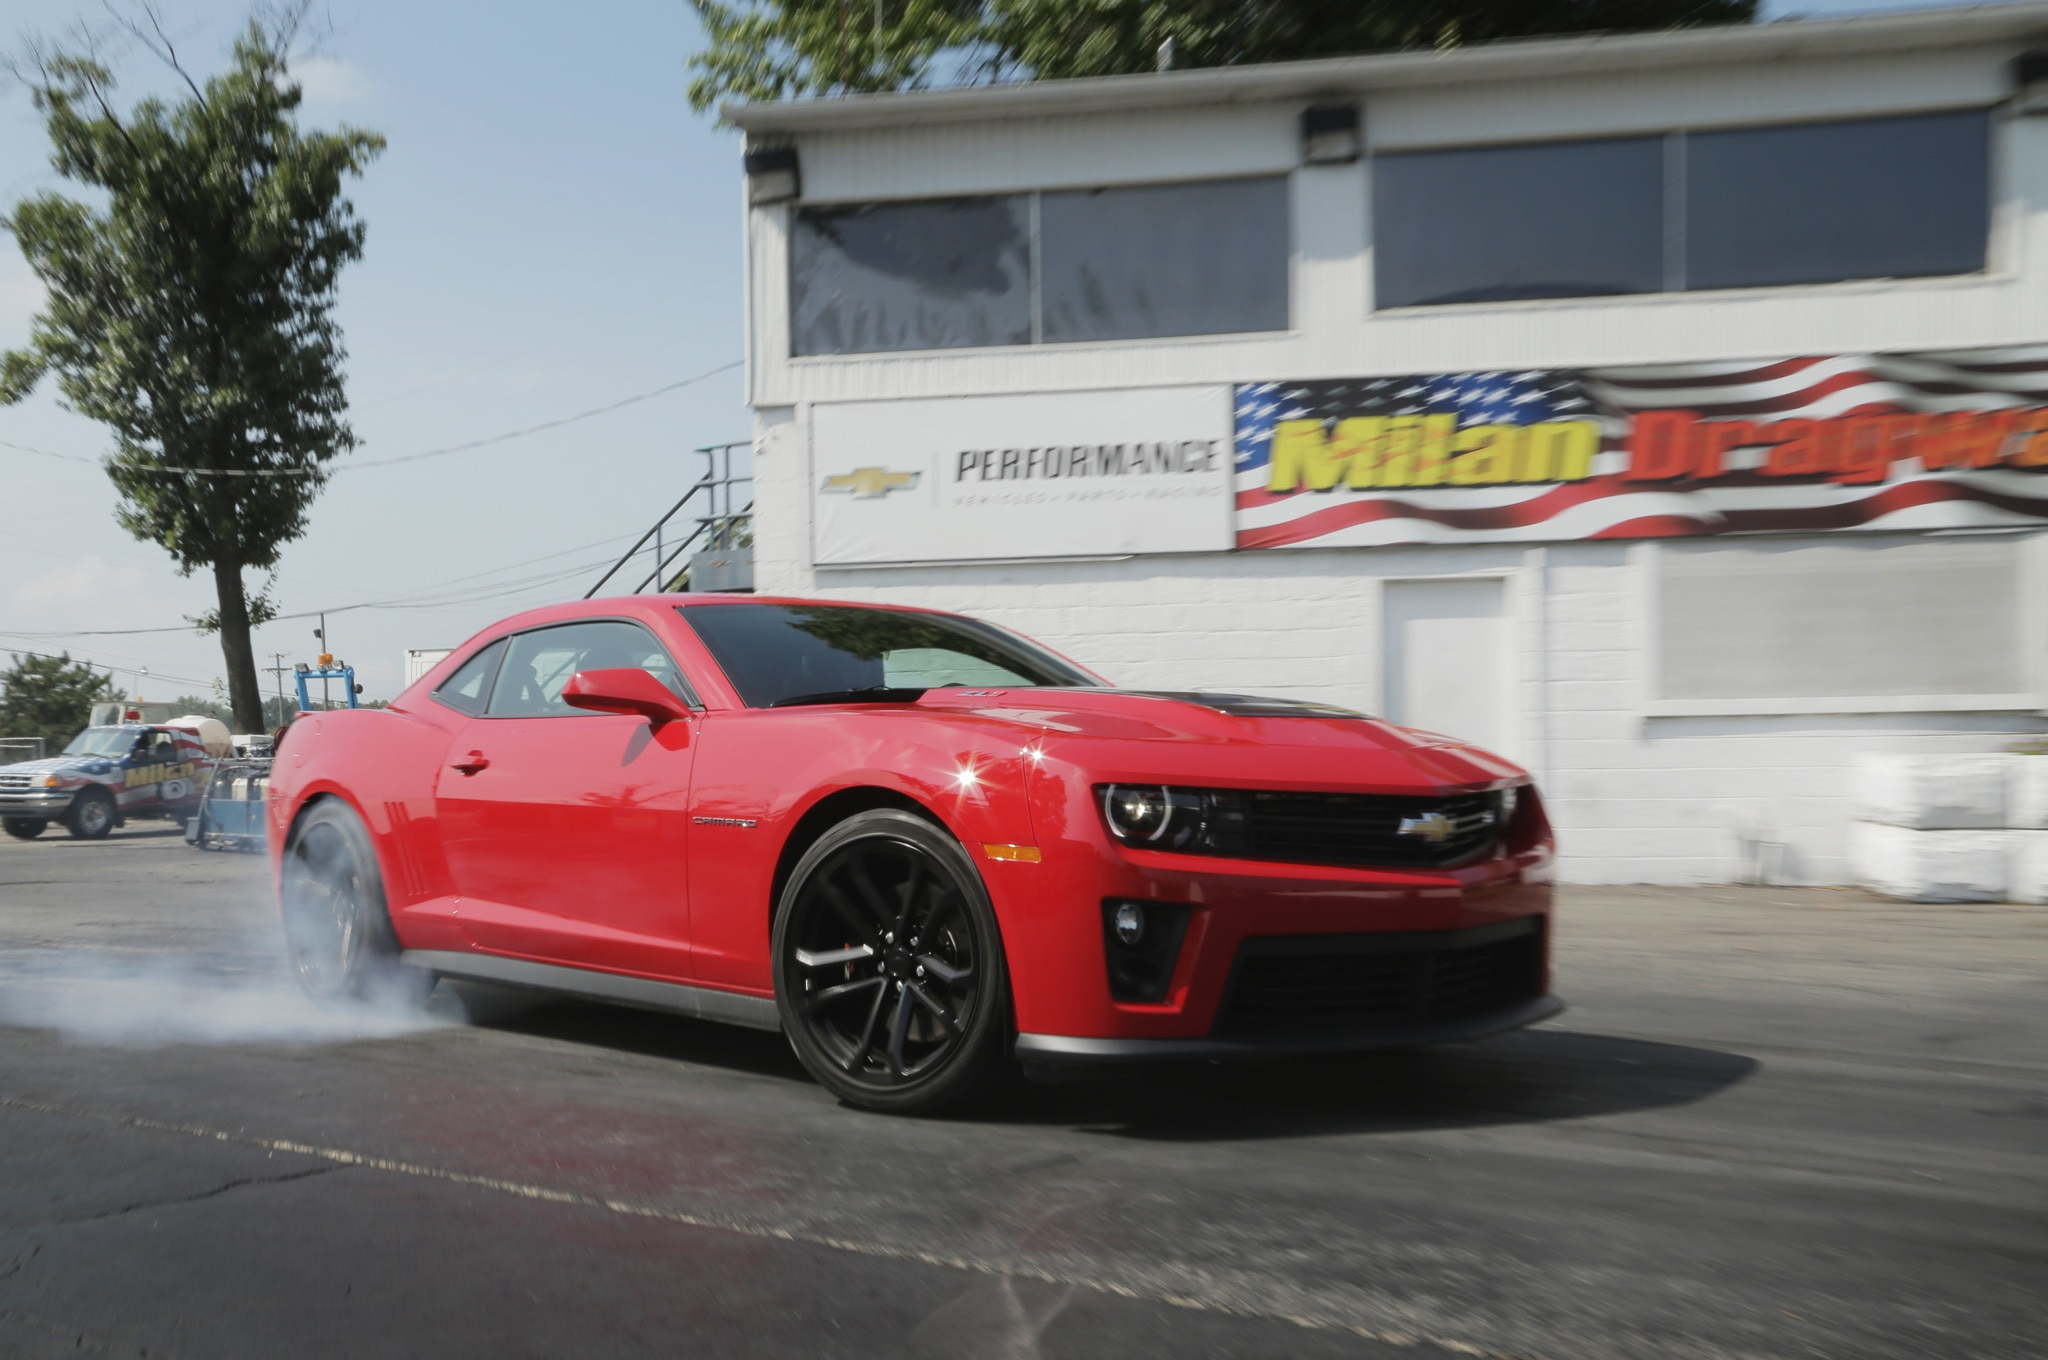 2014 Chevrolet Camaro Zl1 Burnout